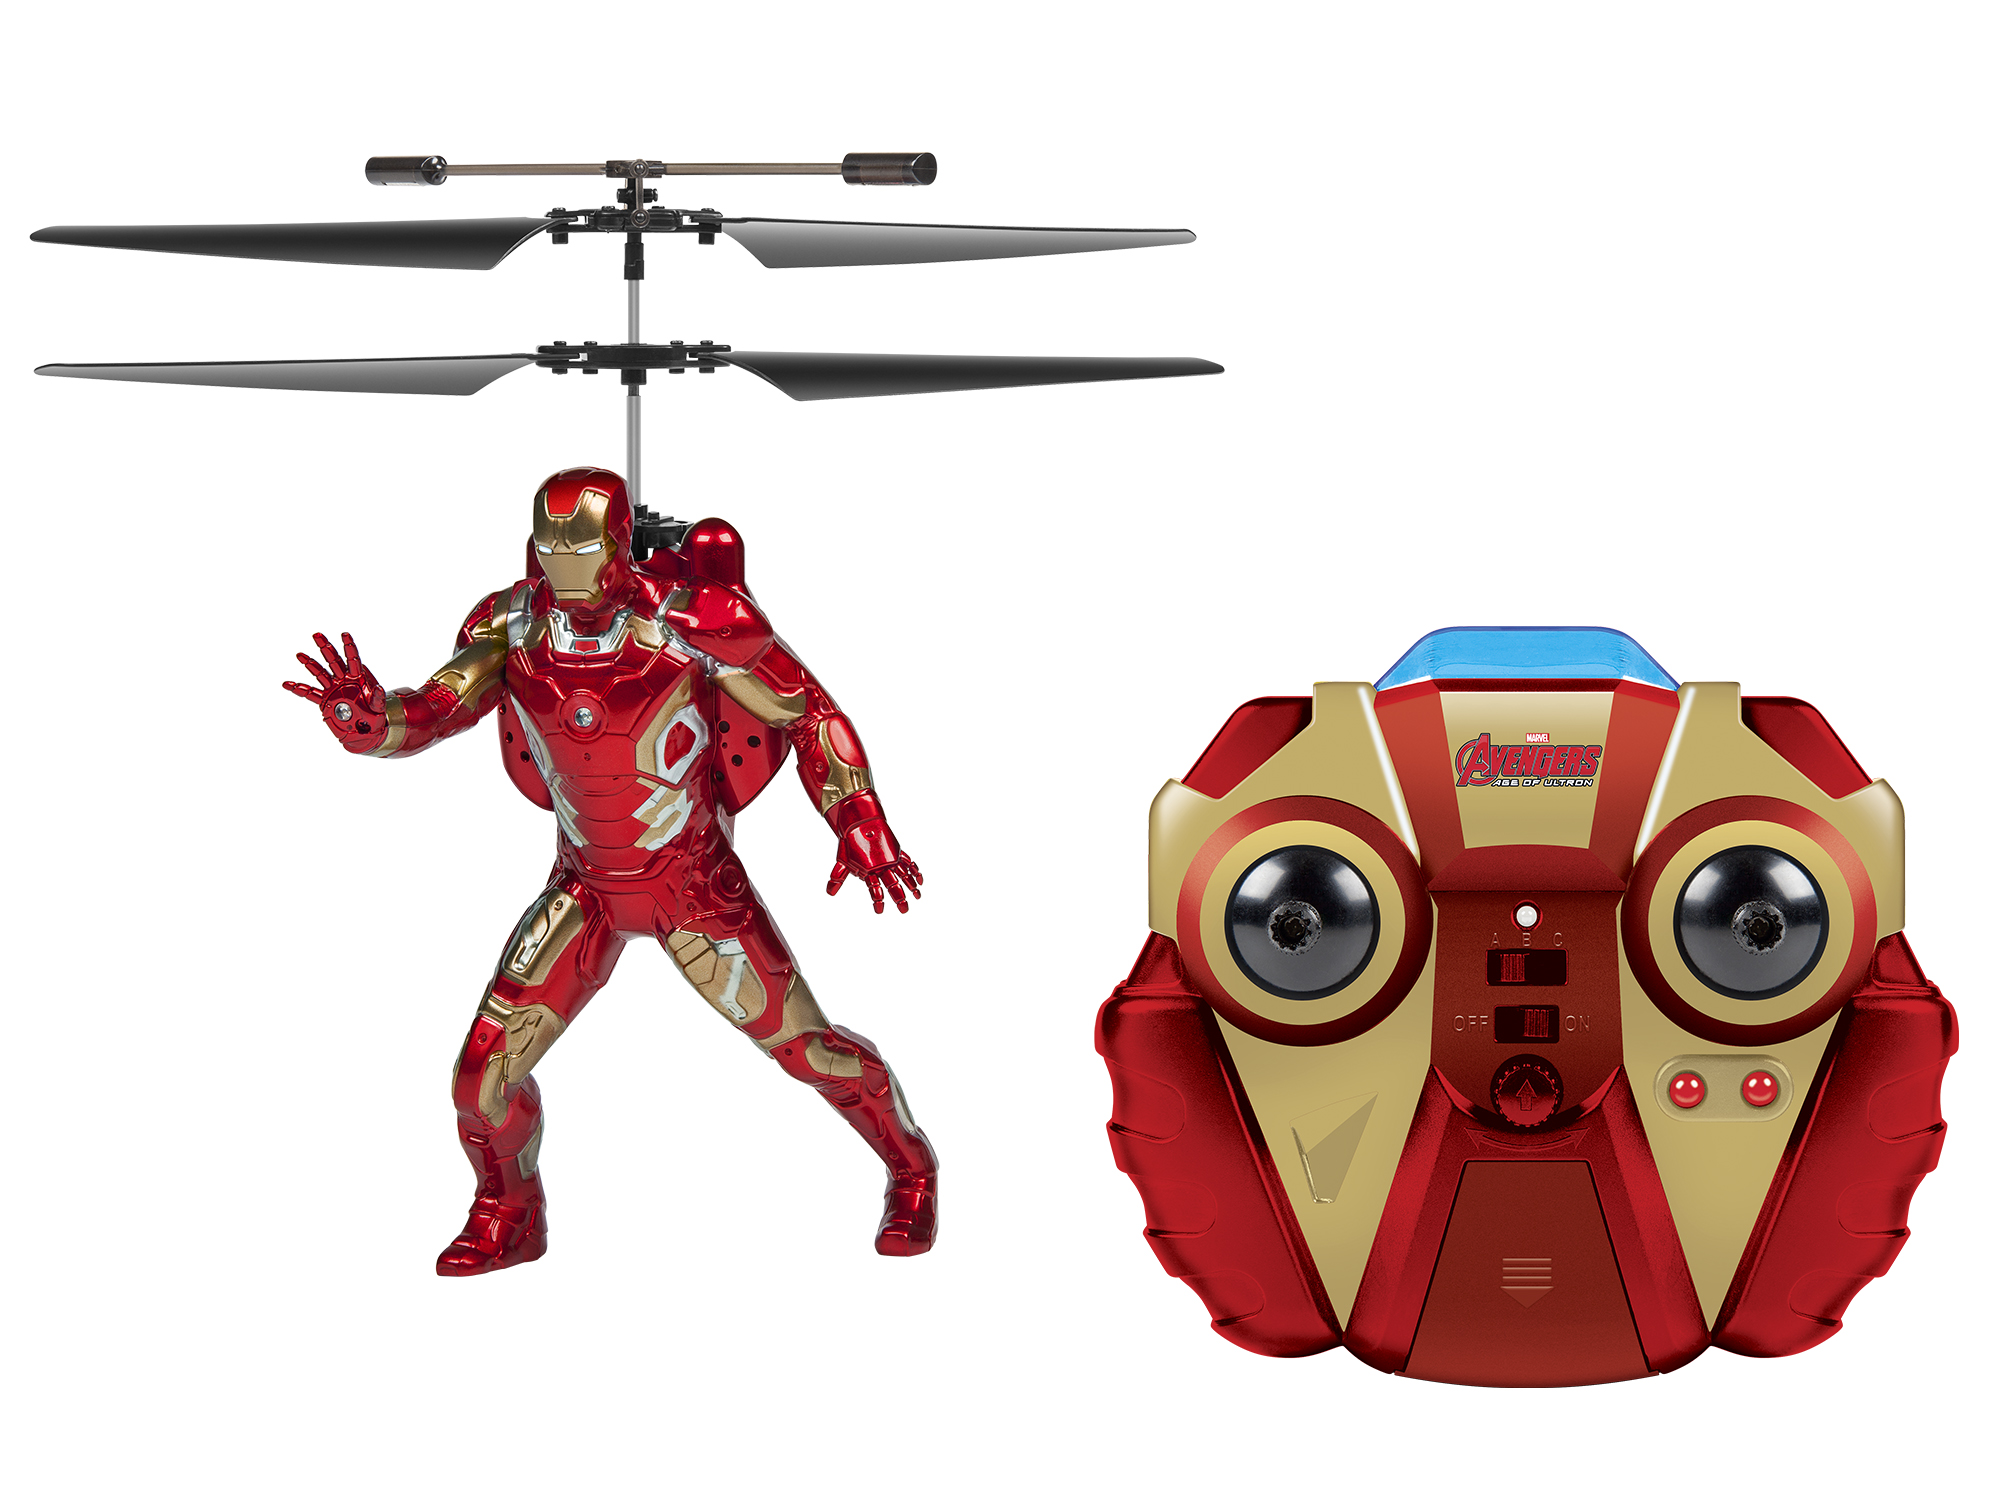 Disney Iron Man 2CH IR RC Helicopter PartNumber: 004W002142129001P KsnValue: 004W002142129001 MfgPartNumber: 33717